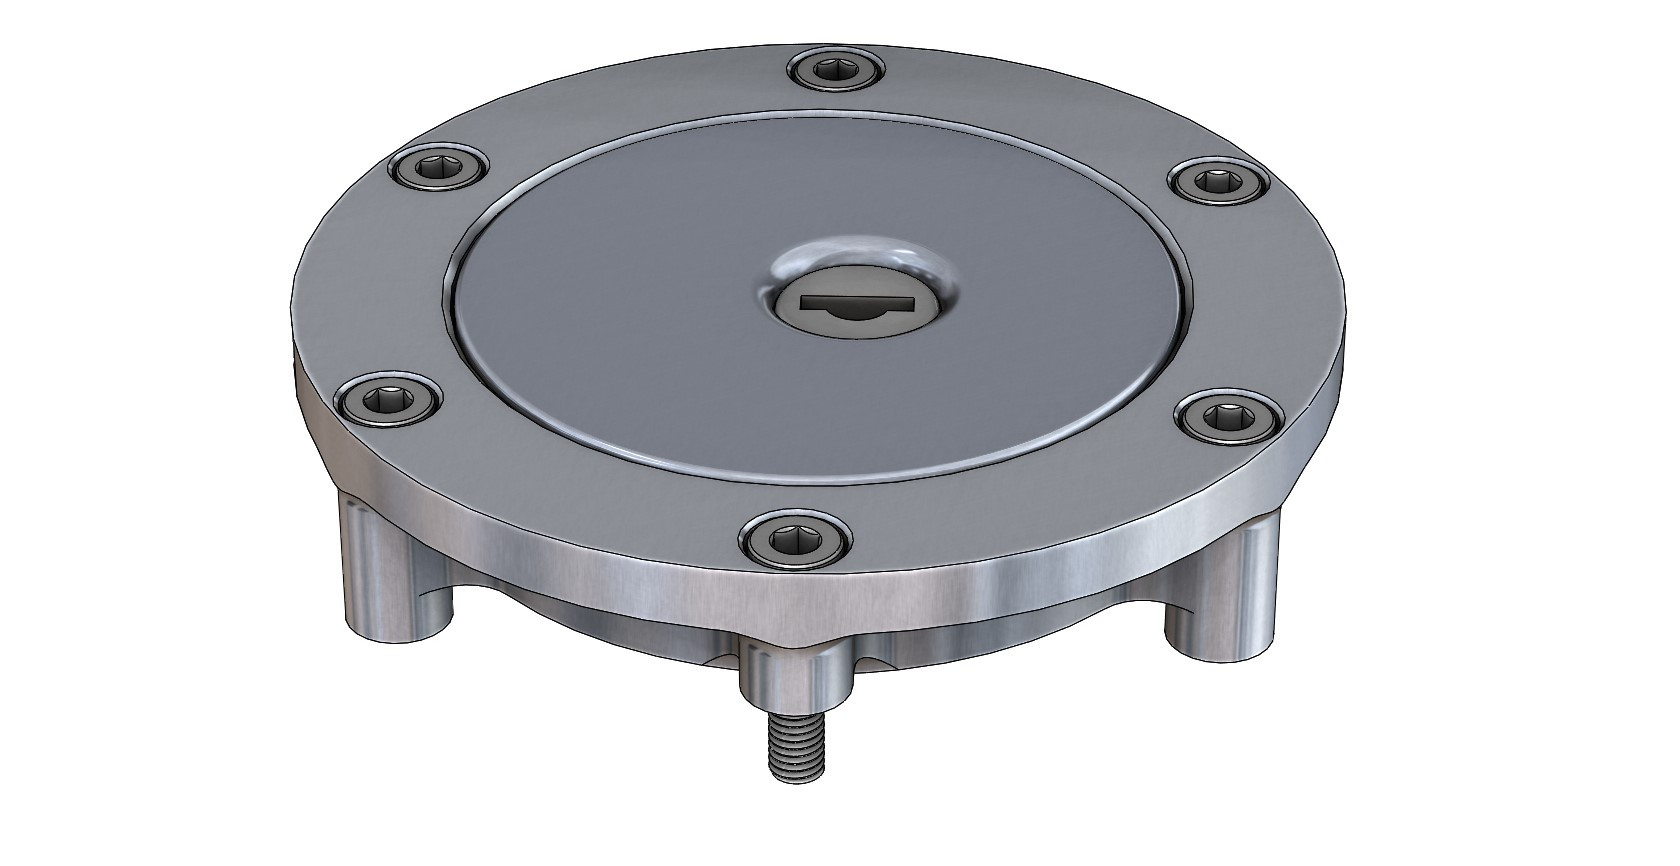 CAD Model - Fuel Filler Cap Housing